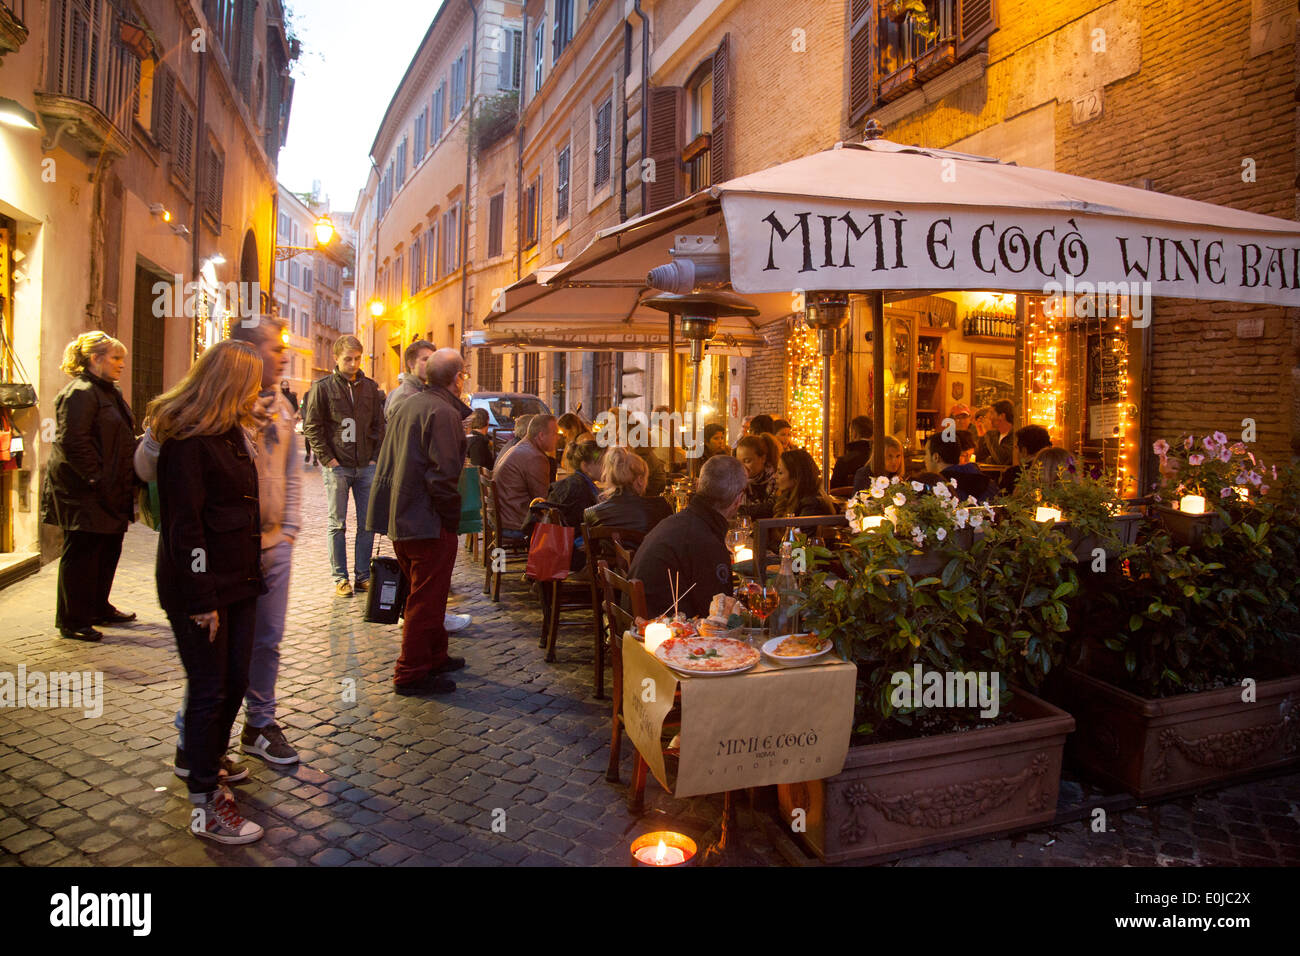 People eating at Mimi e Coco wine bar restaurant in the early evening, Rome, Italy Europe - Stock Image